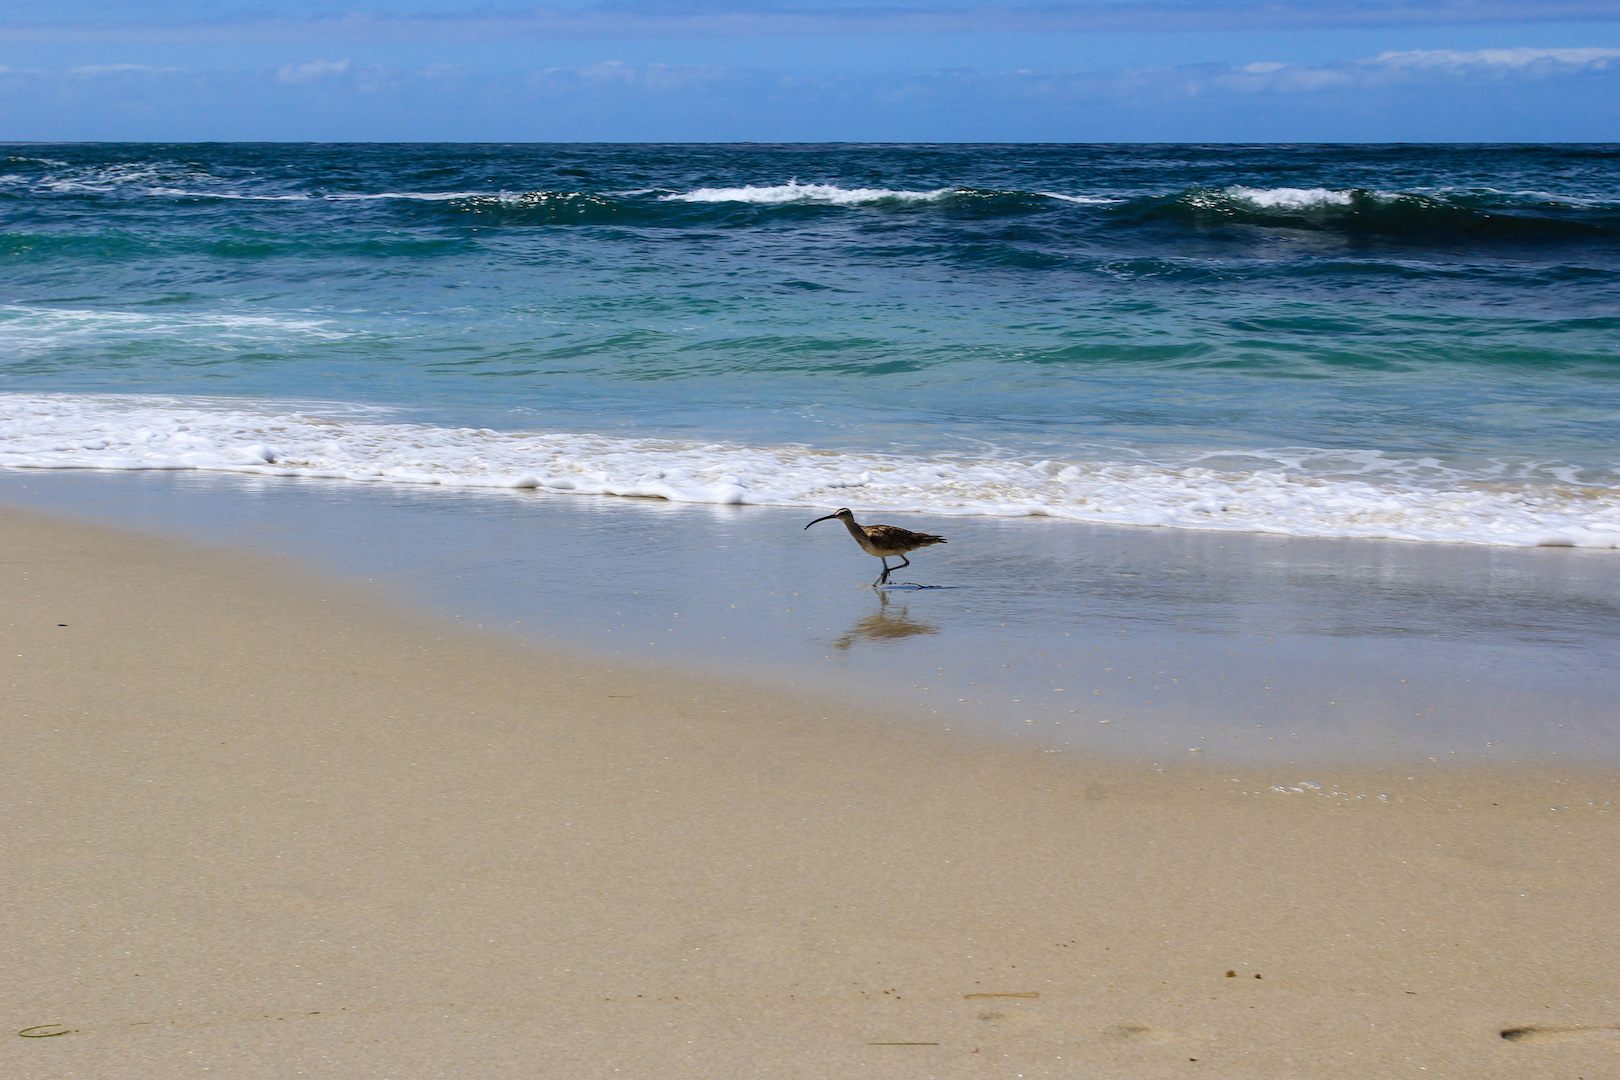 Bird Chasing Waves & Critters at La Jolla Beach in San Diego